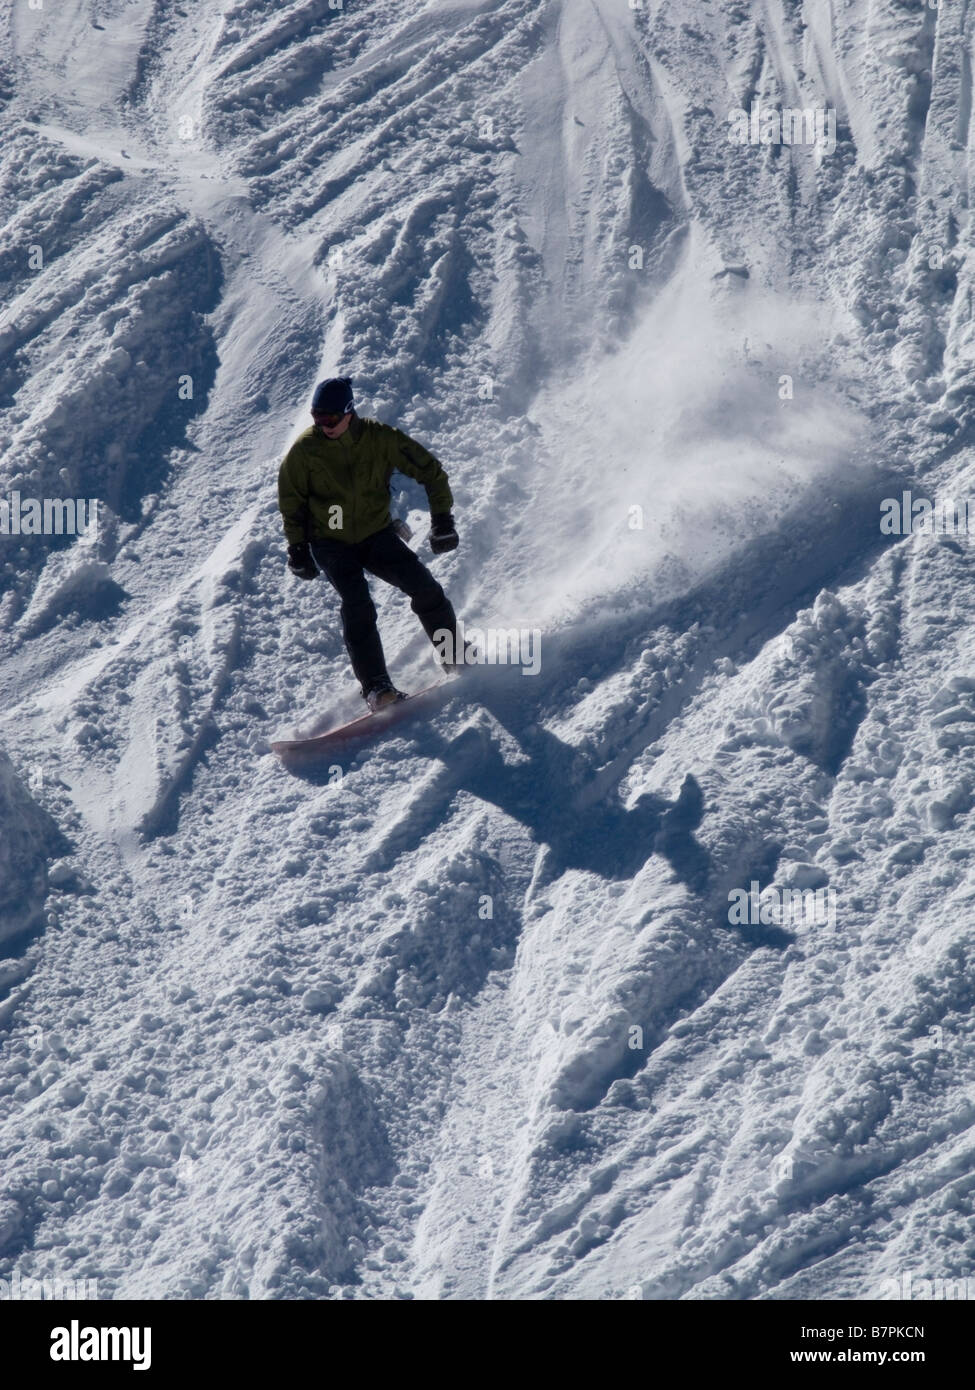 """Snowboarder in the morning sun on the """"Face"""" run at Alpine Meadows Ski Area above North Lake Tahoe, CA. Stock Photo"""